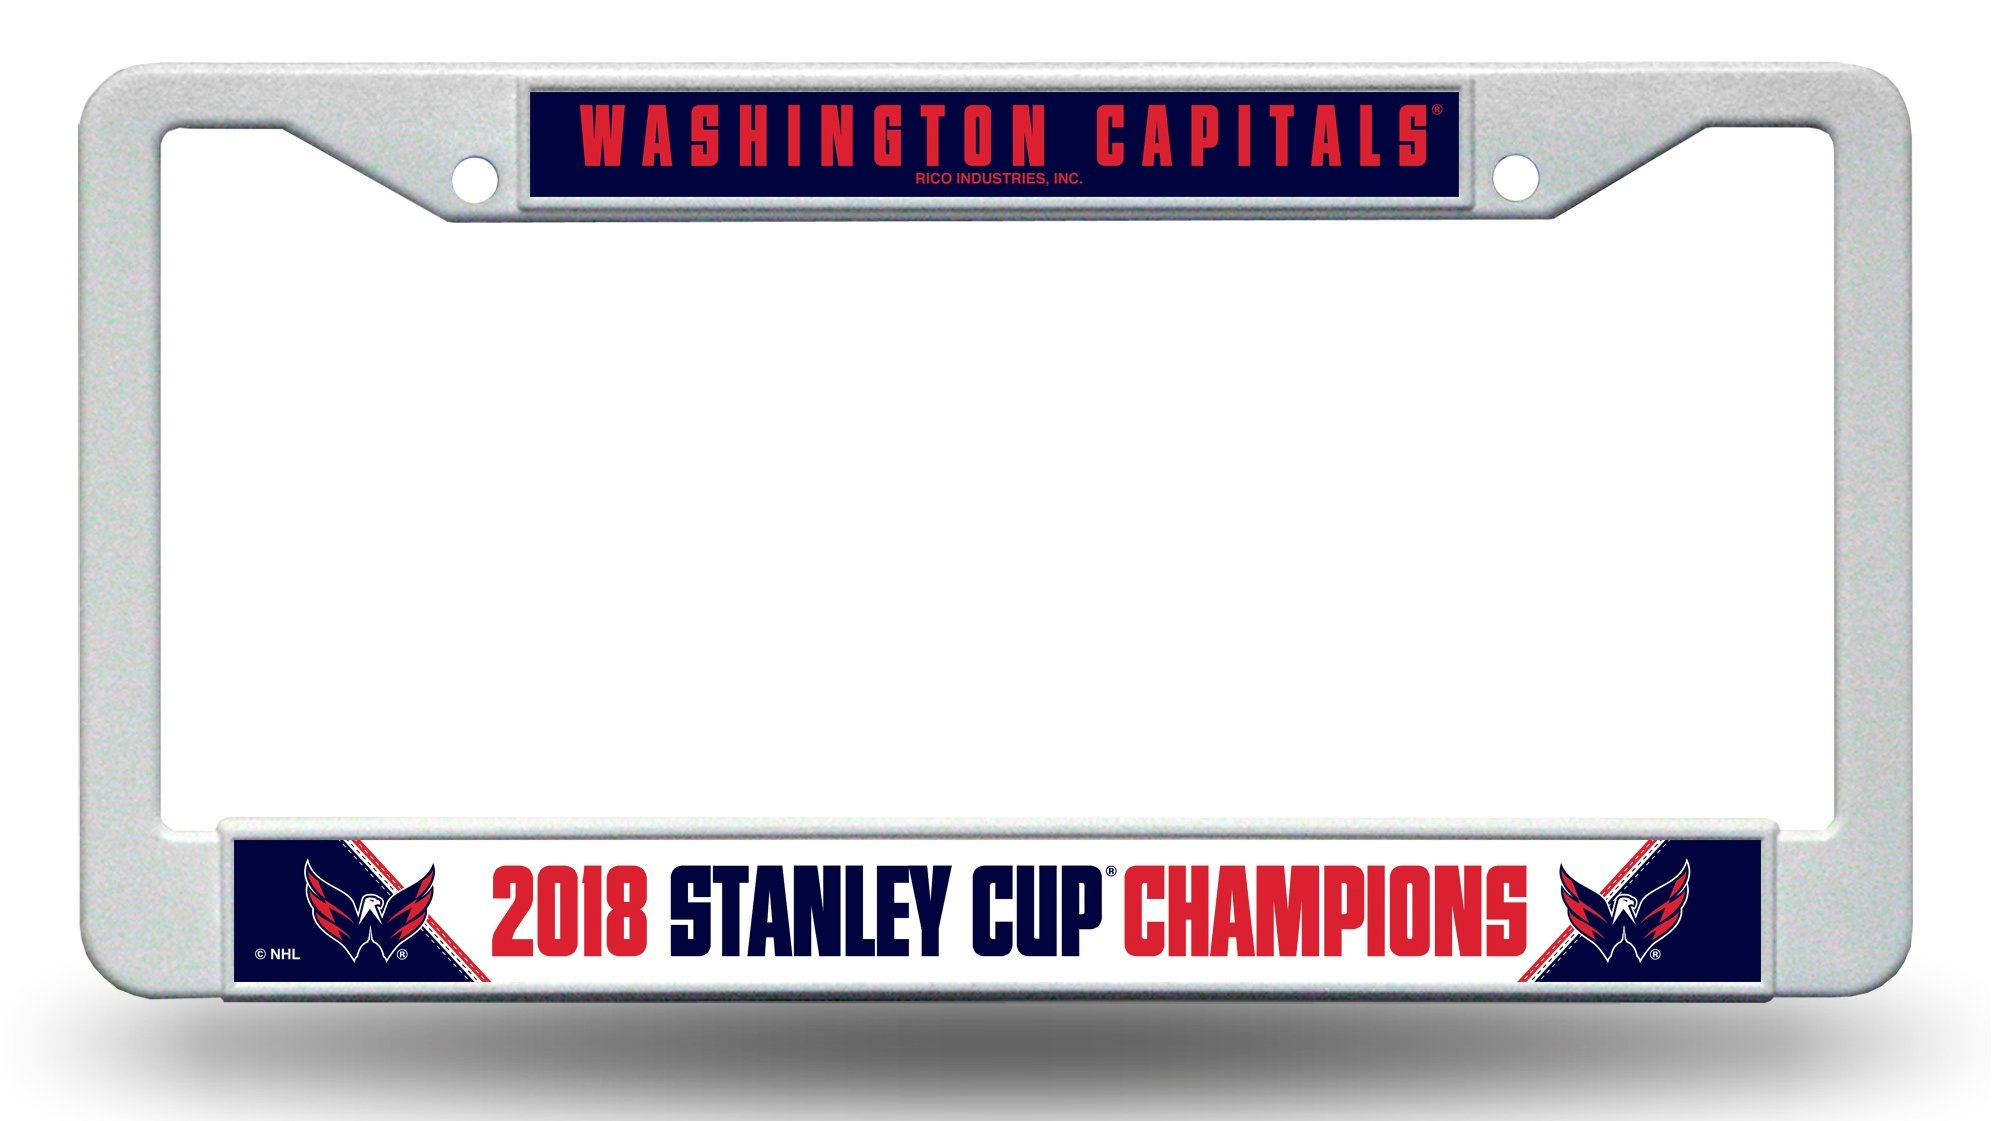 Rico Washington Capitals 2018 Stanley Cup Champions Midnight Blue Chrome License Plate Frame